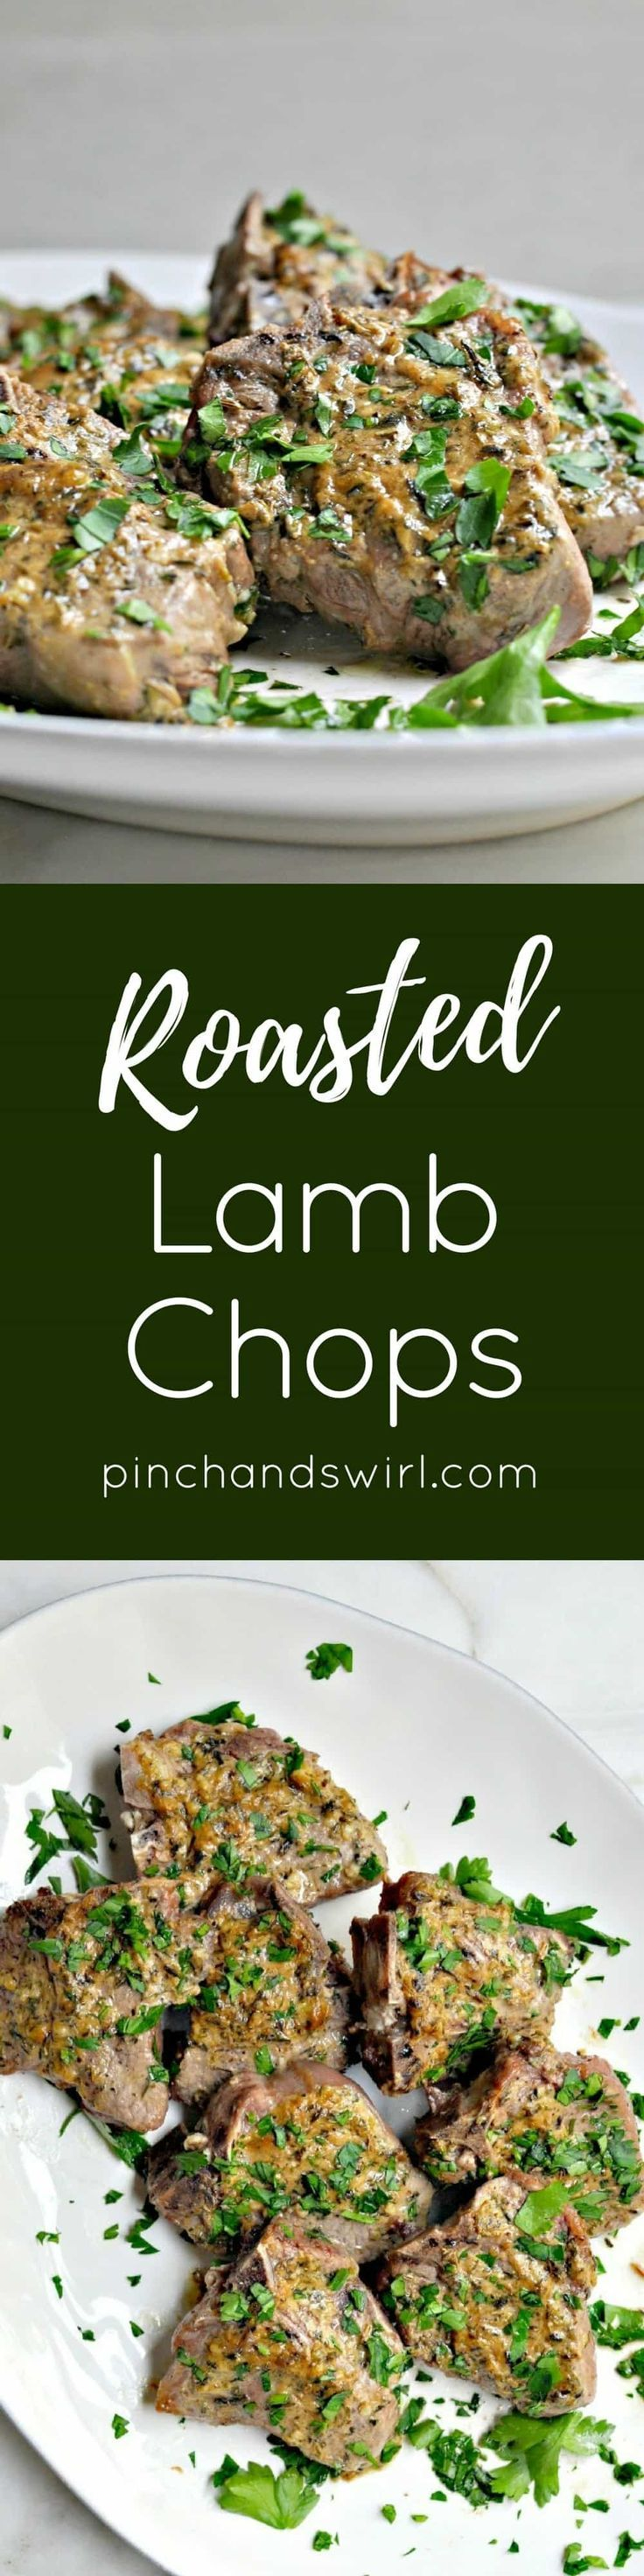 Of all of the Lamb Chop Recipes, this one is my favorite! These lamb chops are roasted in the oven for 15 minutes and require just 5 minutes of prep! Make them for date night or even a dinner party! #lambchops #dinnerparty #datenightideas #easymeals #easydinner